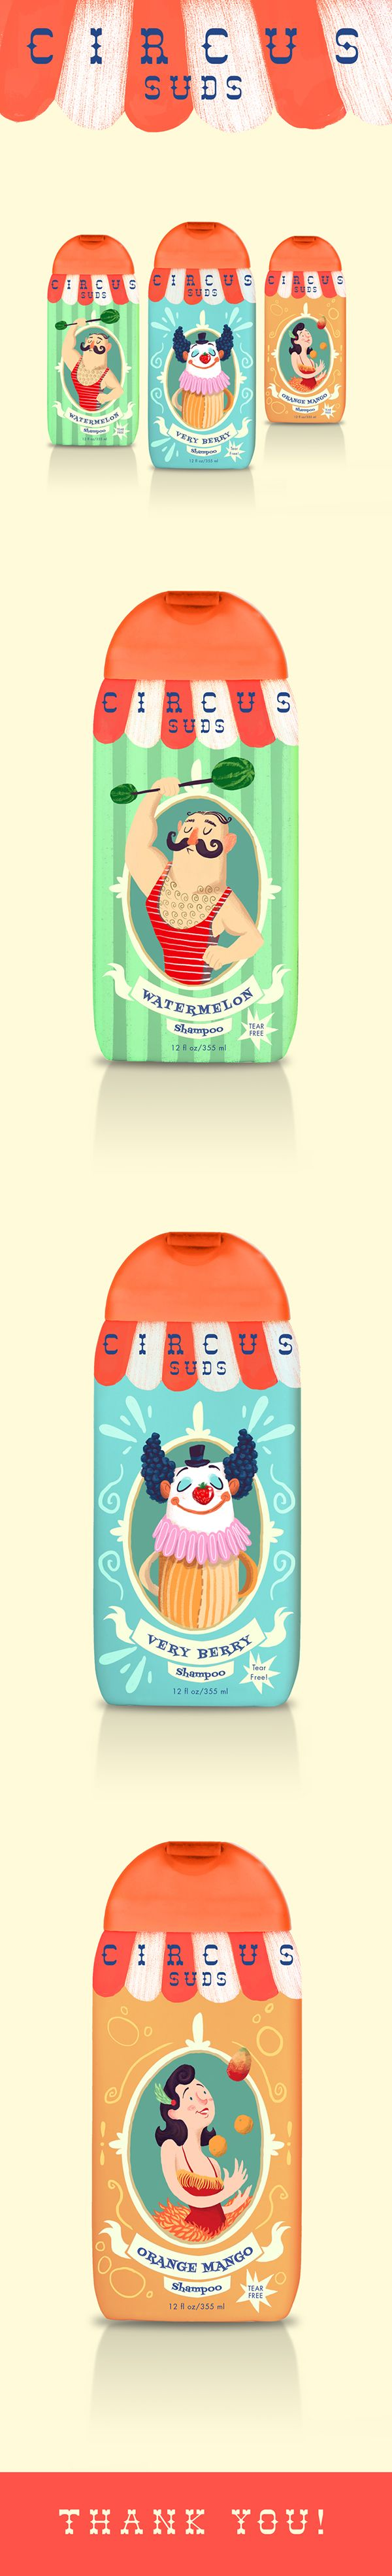 """Circus Suds"" is a children's soap brand concept which was used as an exercise in creating a cohesive product design."